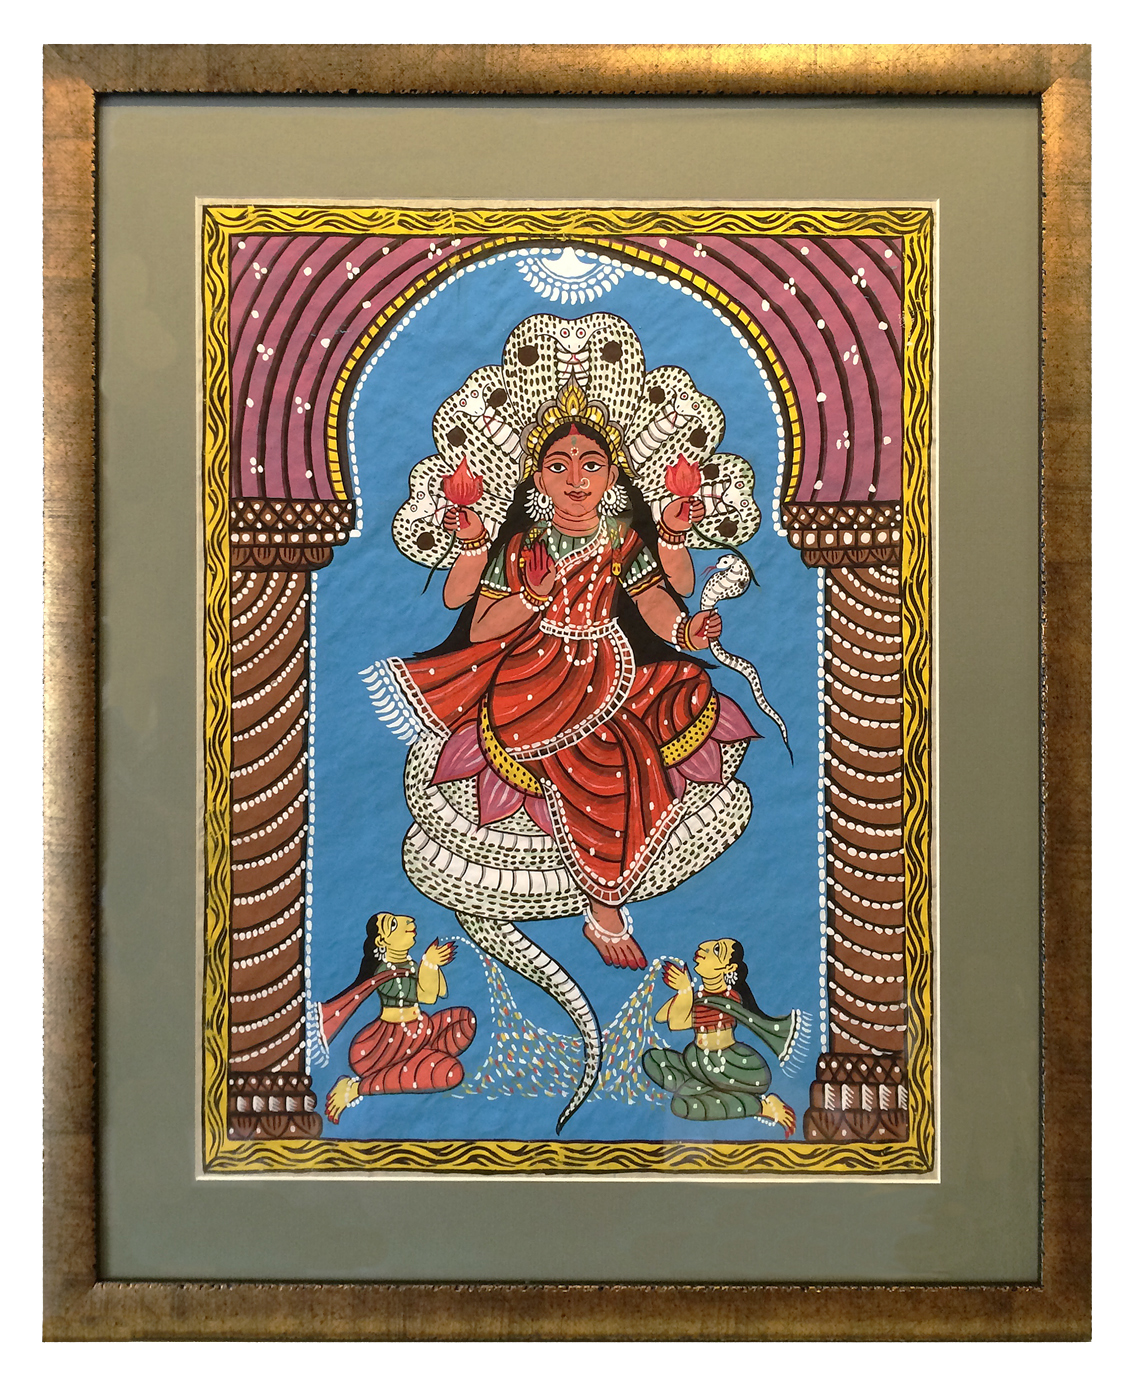 An illustration of Devi, The Goddess of All Existence, in a brushed gold frame that complements the richness of the artwork.